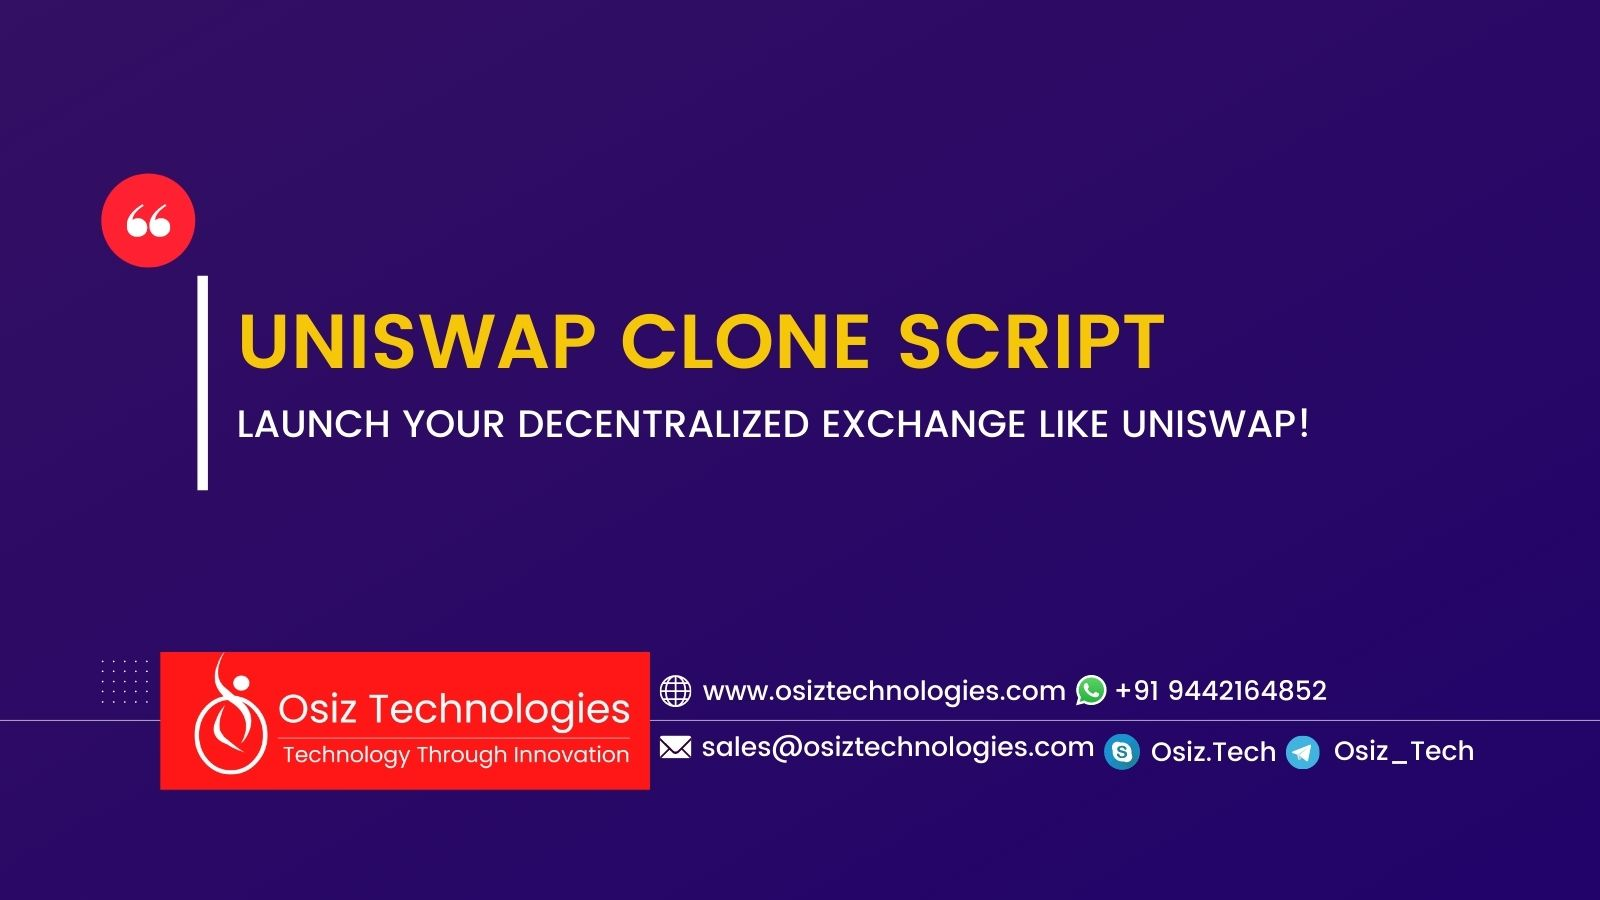 START A DEFI EXCHANGE PROTOCOL LIKE UNISWAP WITH OUR UNISWAP CLONE SCRIPT